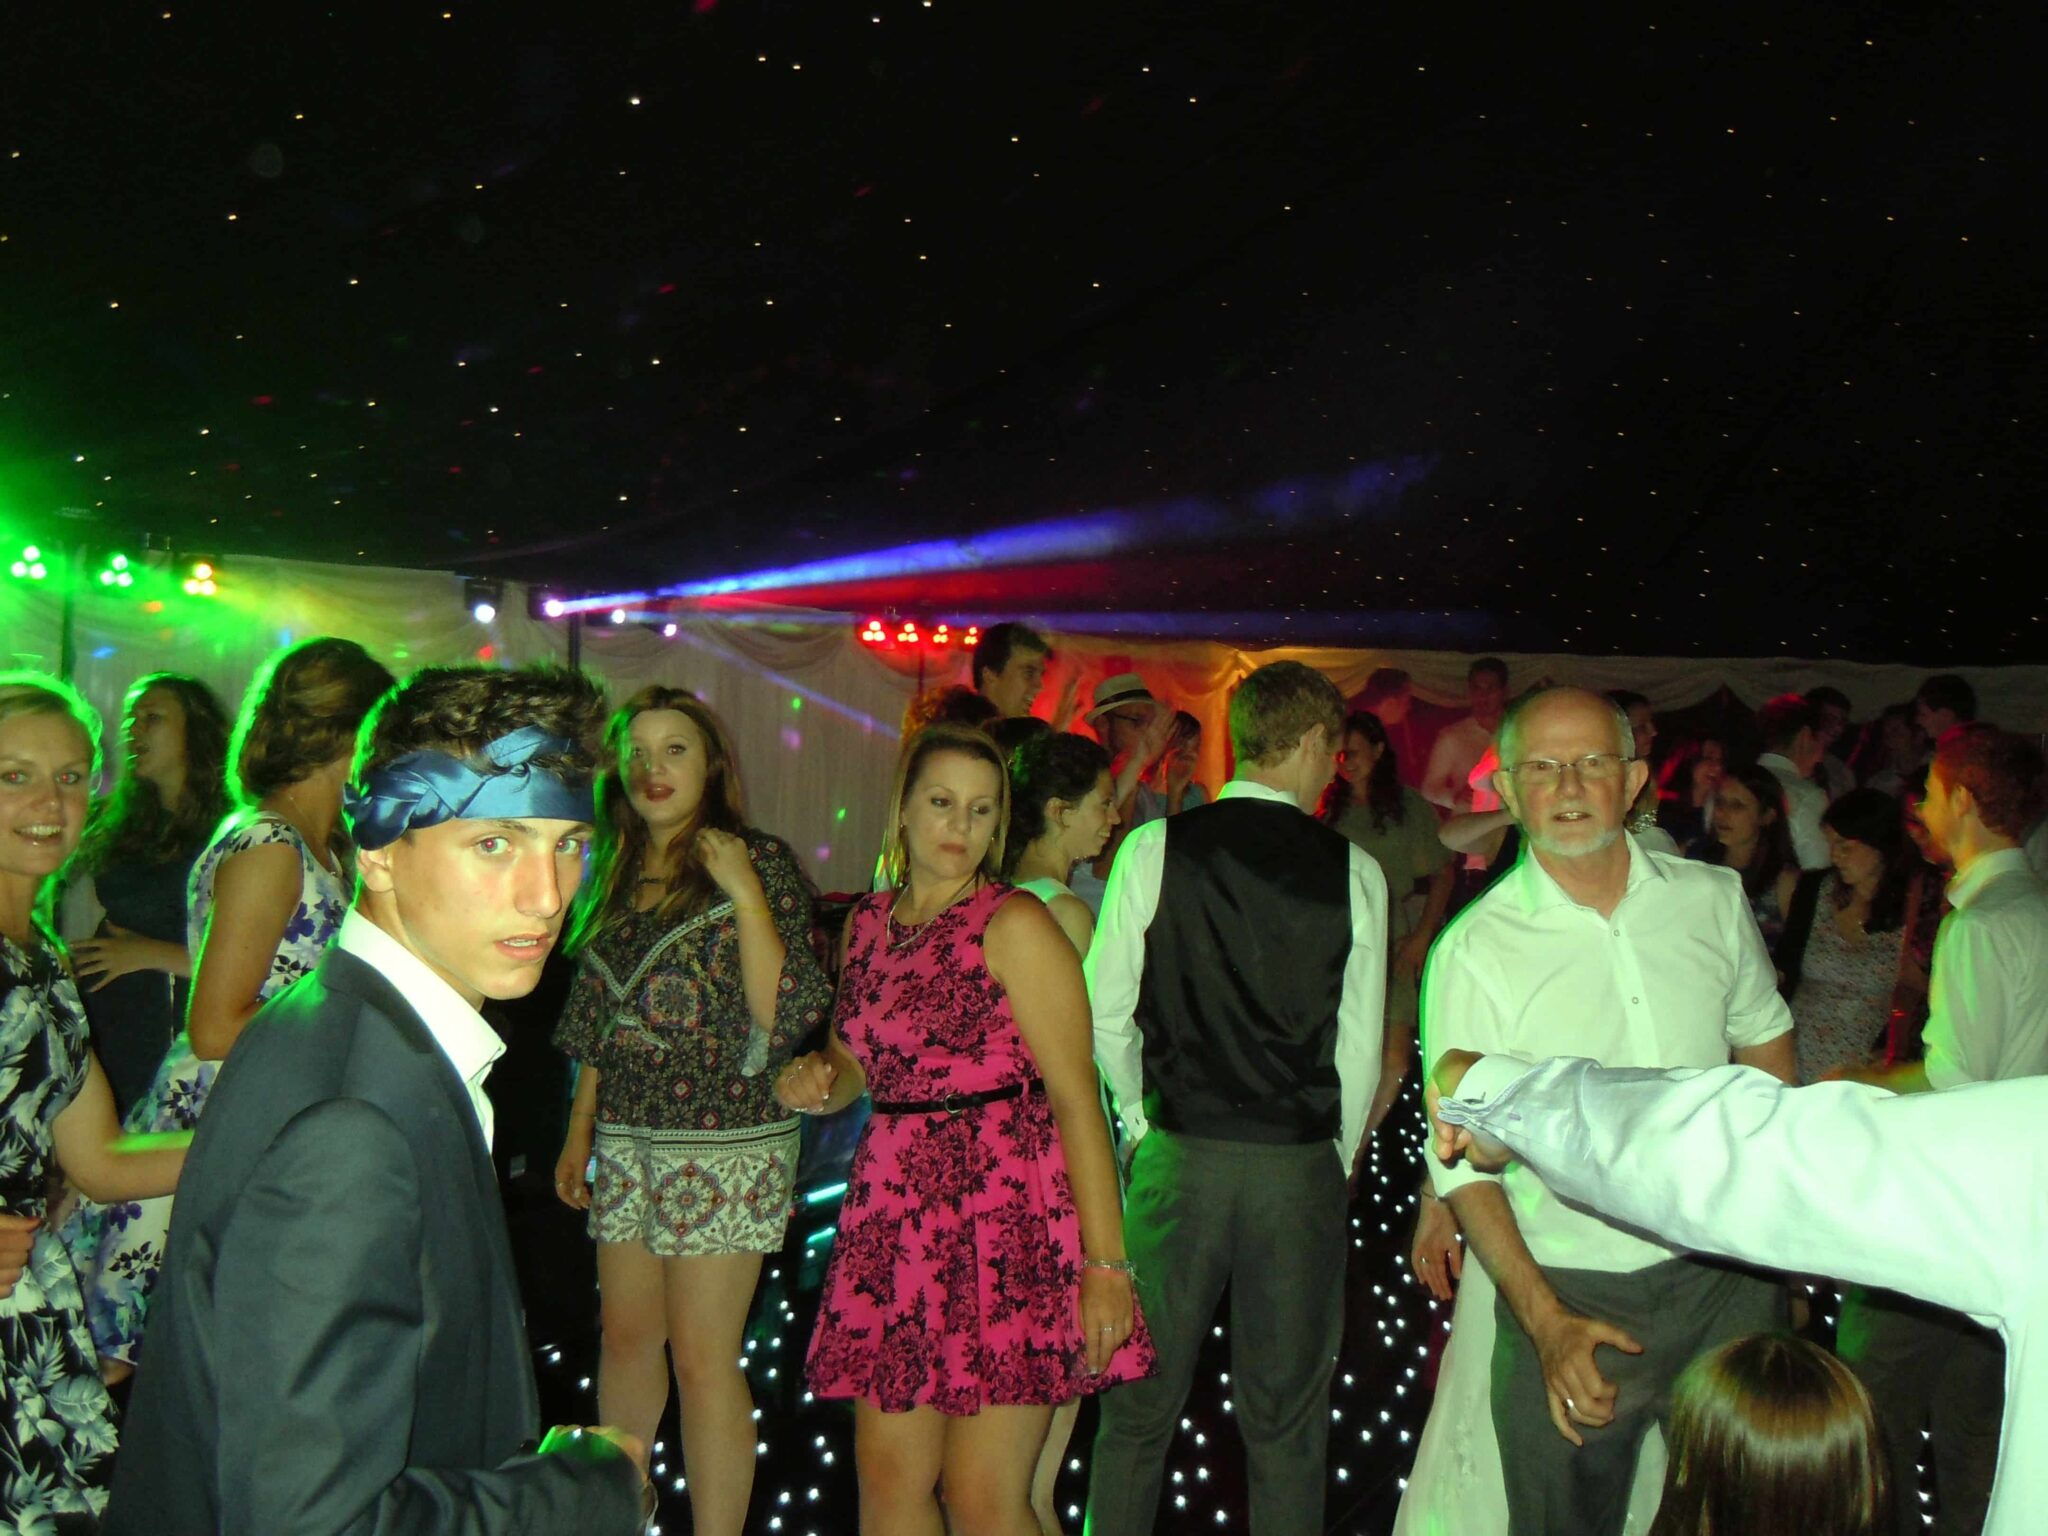 wedding-disco-cambridge-mindys-roadshow-bride-goom-corporate